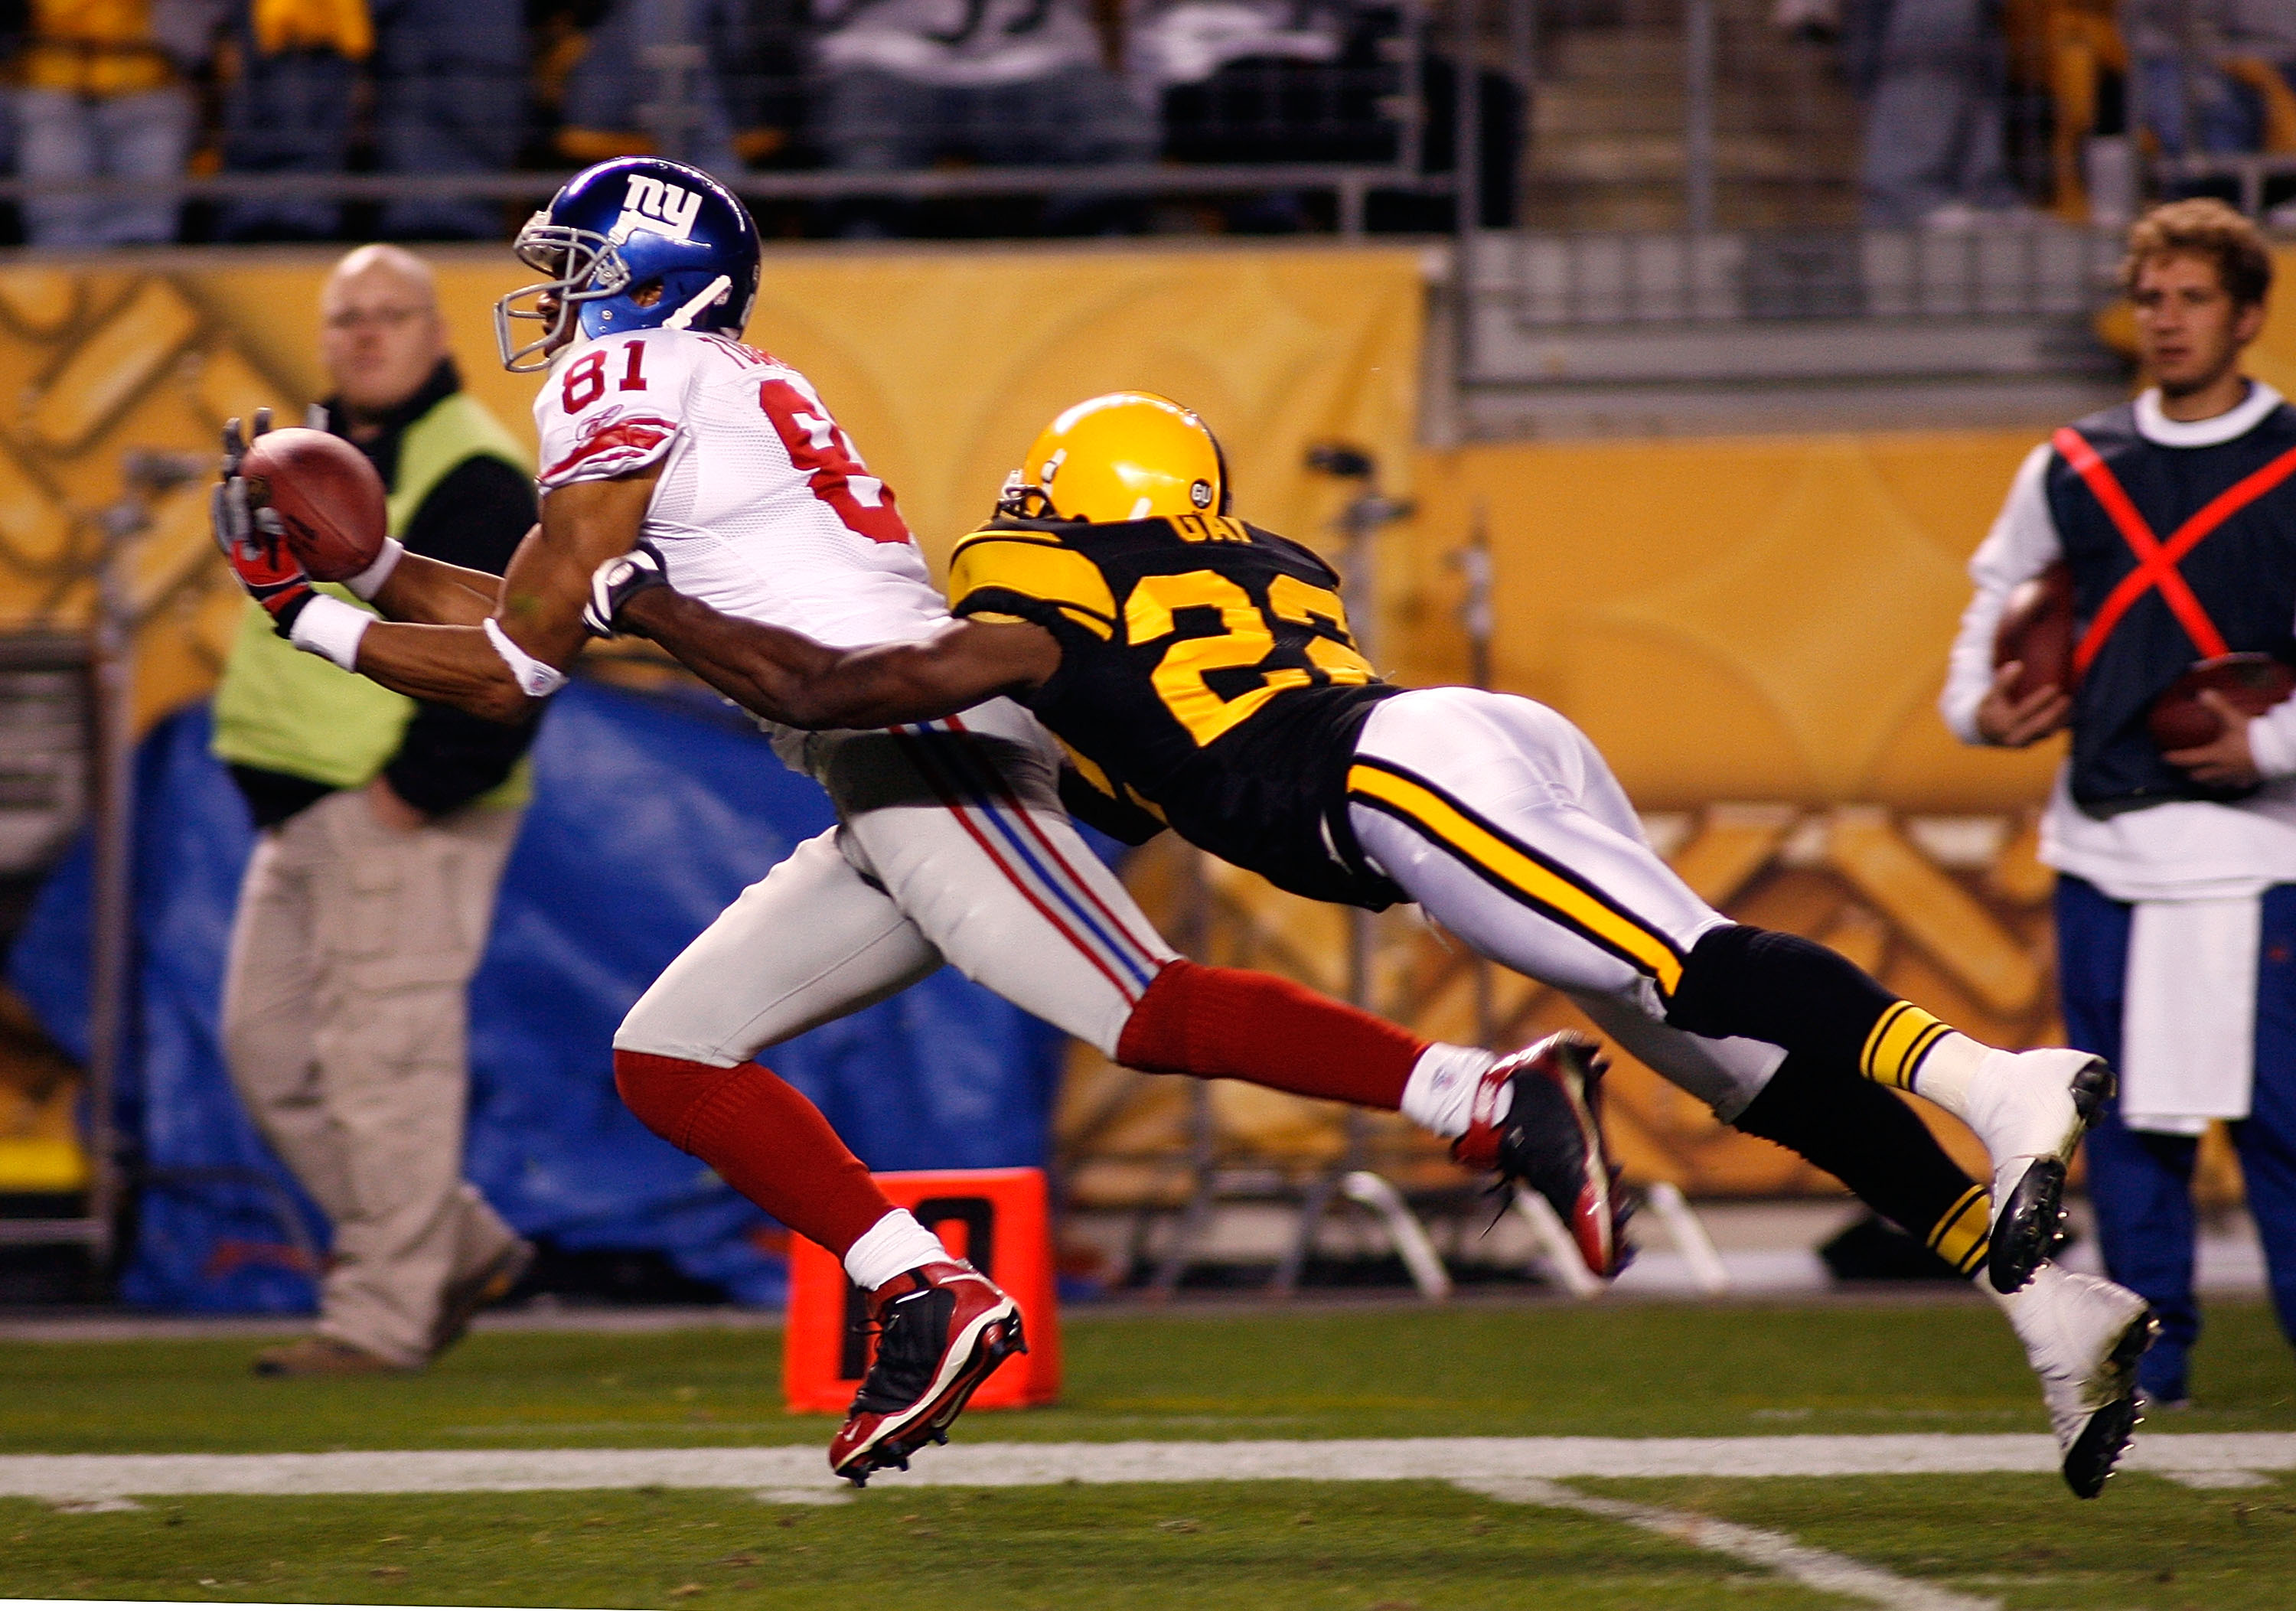 PITTSBURGH - OCTOBER 26: Amani Toomer #81 of the New York Giants makes a 30 yard catch on fourth down with William Gay #22 of the Pittsburgh Steelers defending on October 26, 2008 at Heinz Field in Pittsburgh, Pennsylvania. The Giants won 21-14.  (Photo b